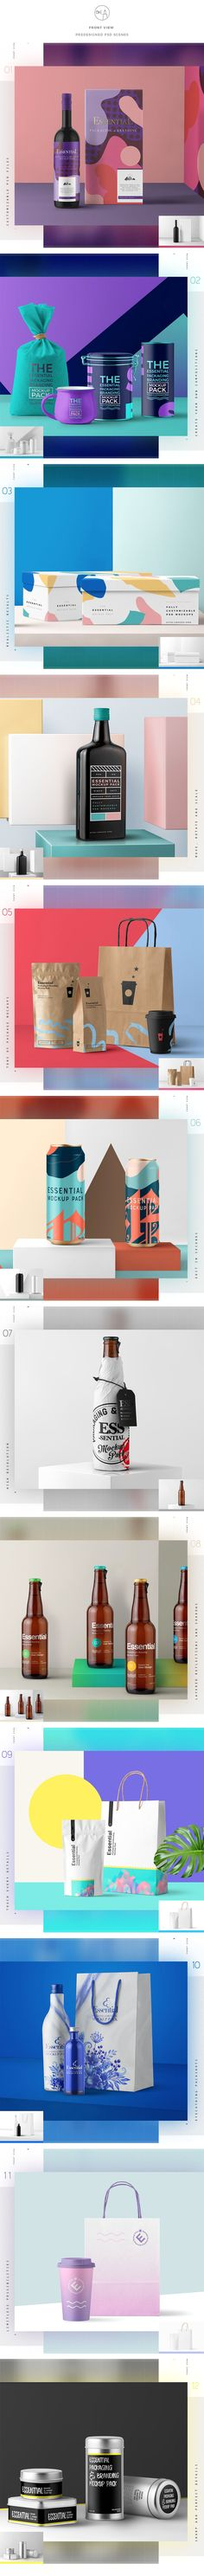 Essential Packaging Branding Mockup by Mockup Zone on @creativemarket